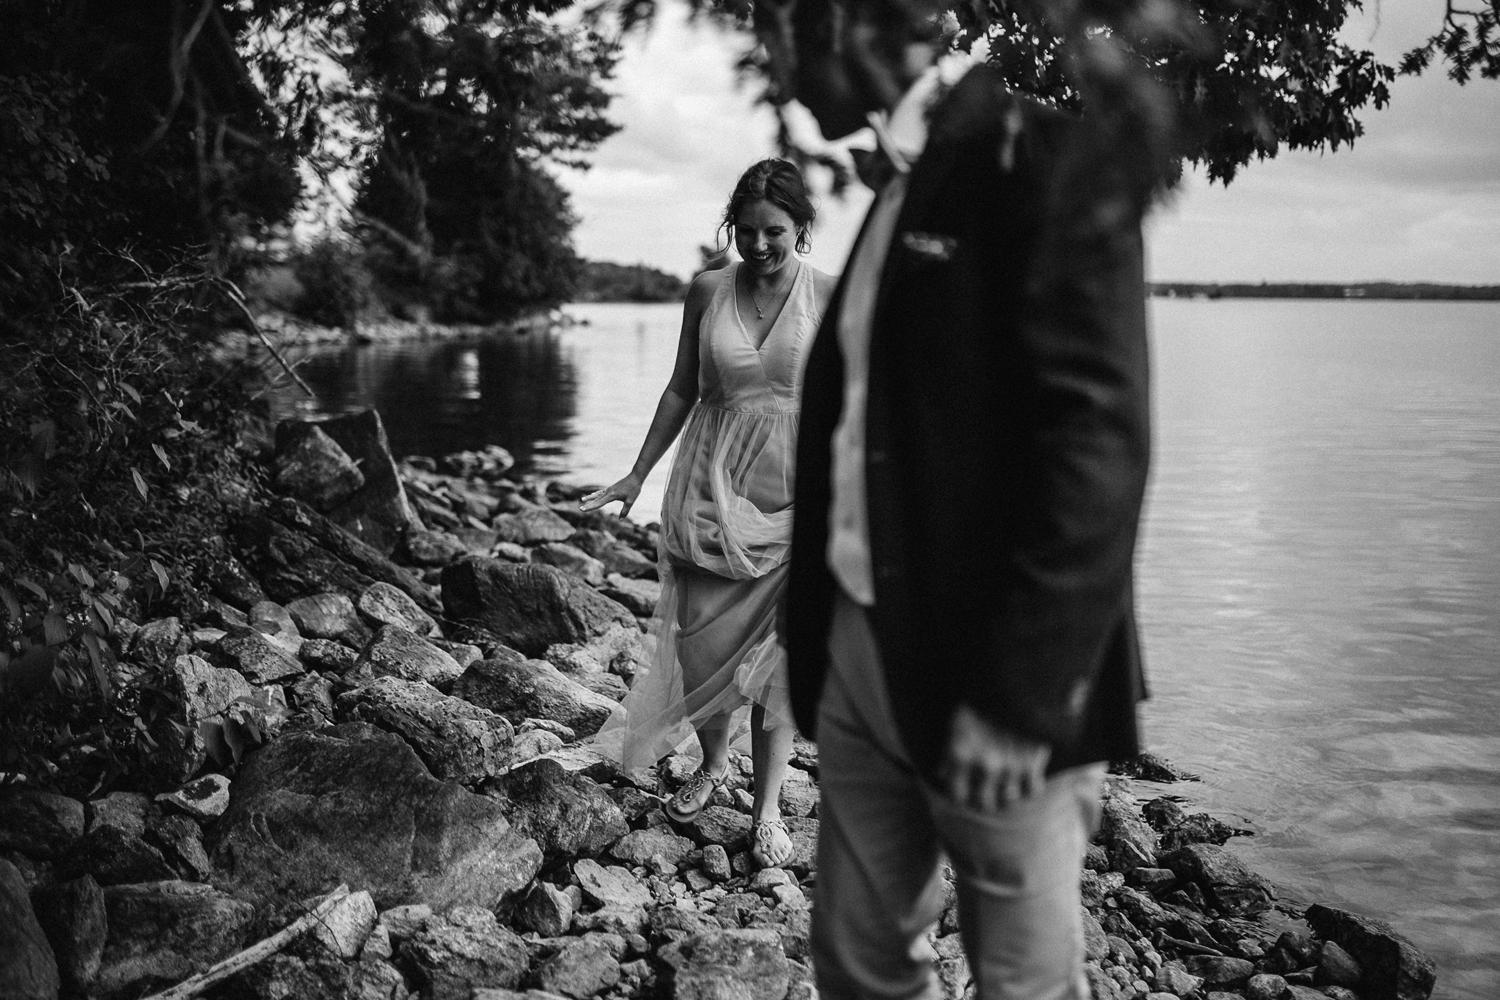 kerry ford photography - small intimate backyard rideau lake island wedding perth ontario-136.jpg